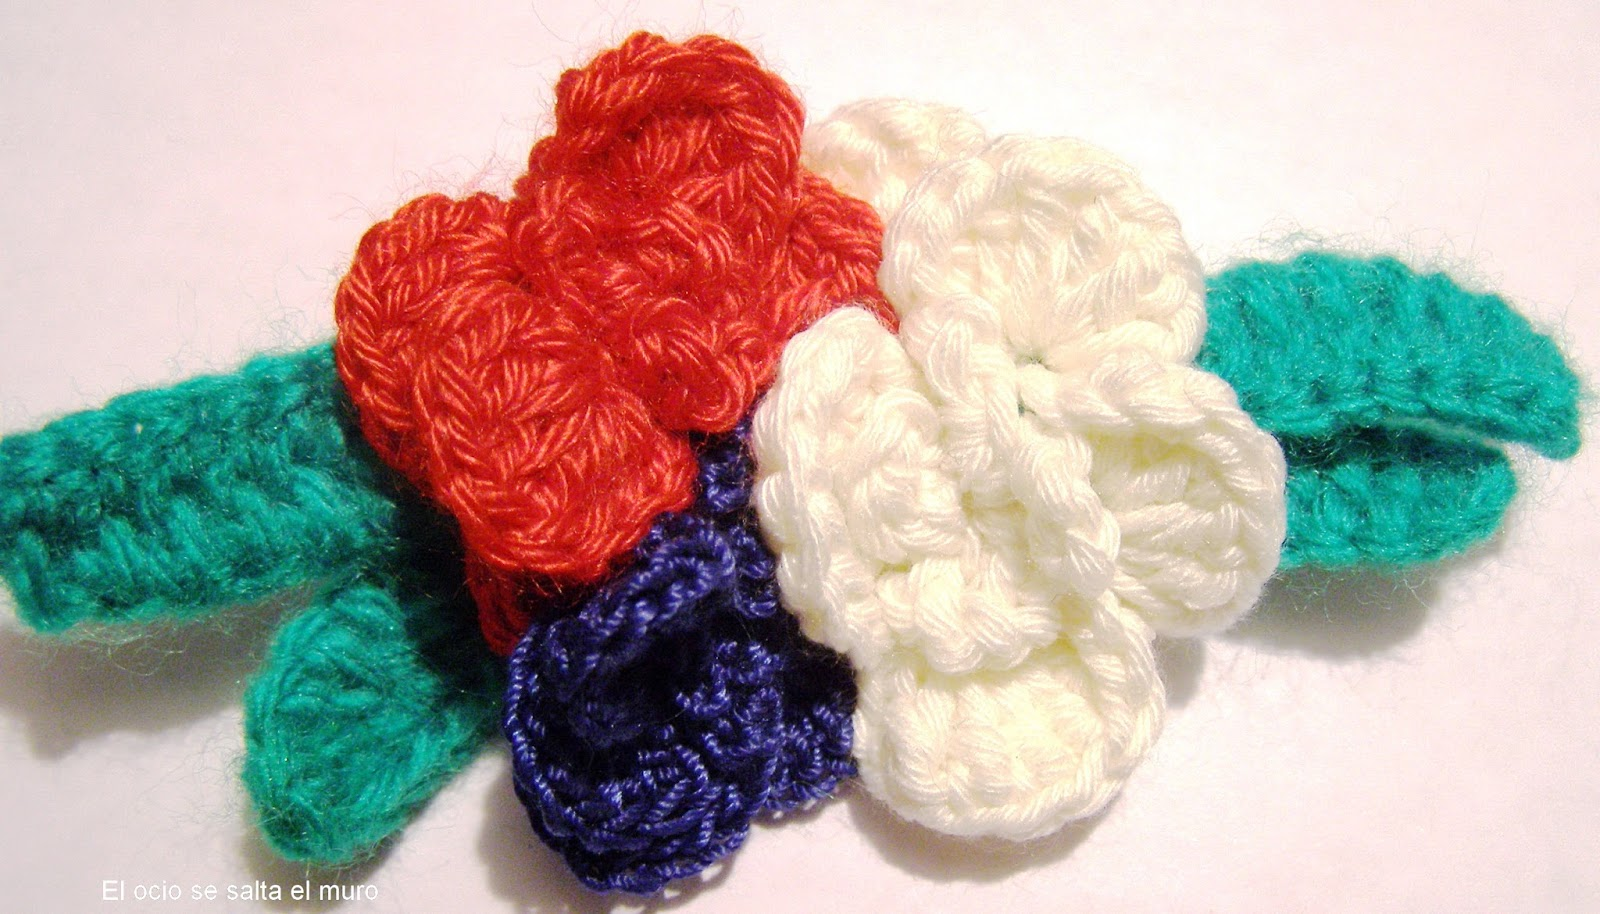 Carpeta En Espiral De Crochet Flores De Ganchillo Decoracin Con Flores De Ganchillo With Flores